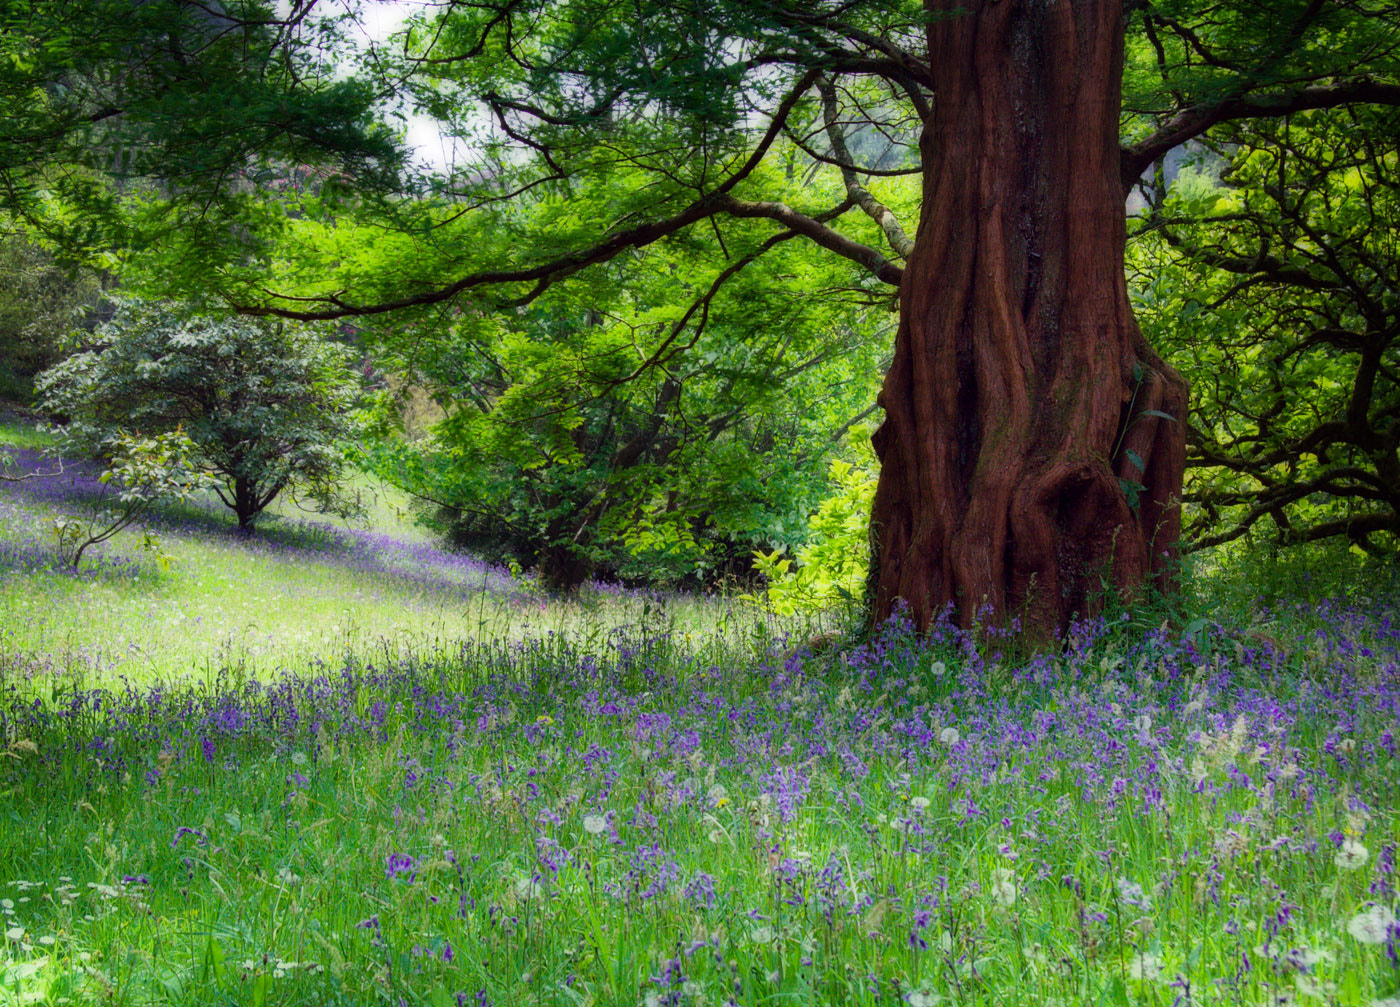 Photograph The bluebells by Paul Davis on 500px